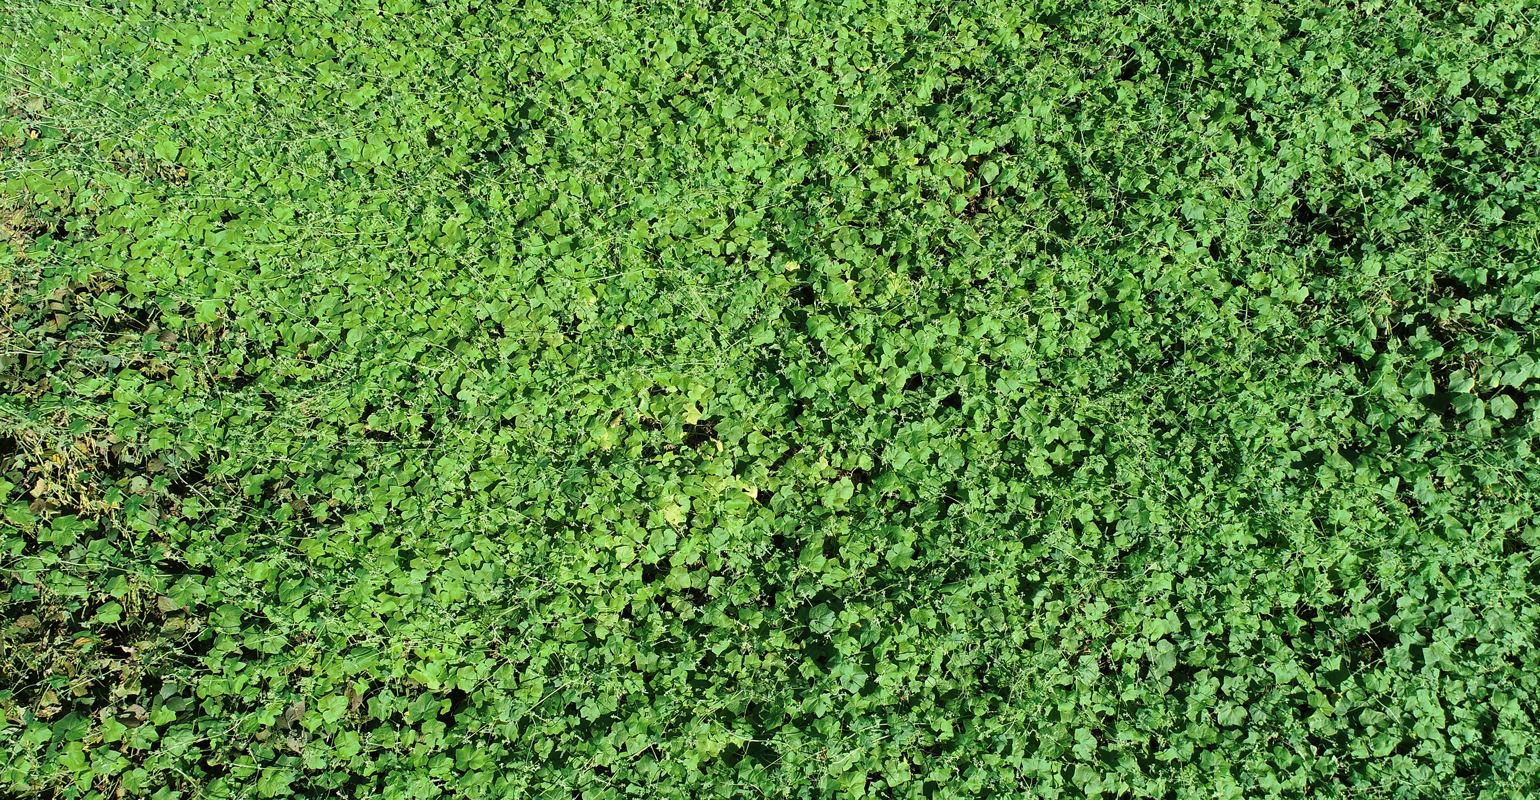 aerial image of burr cucumber in soybean field